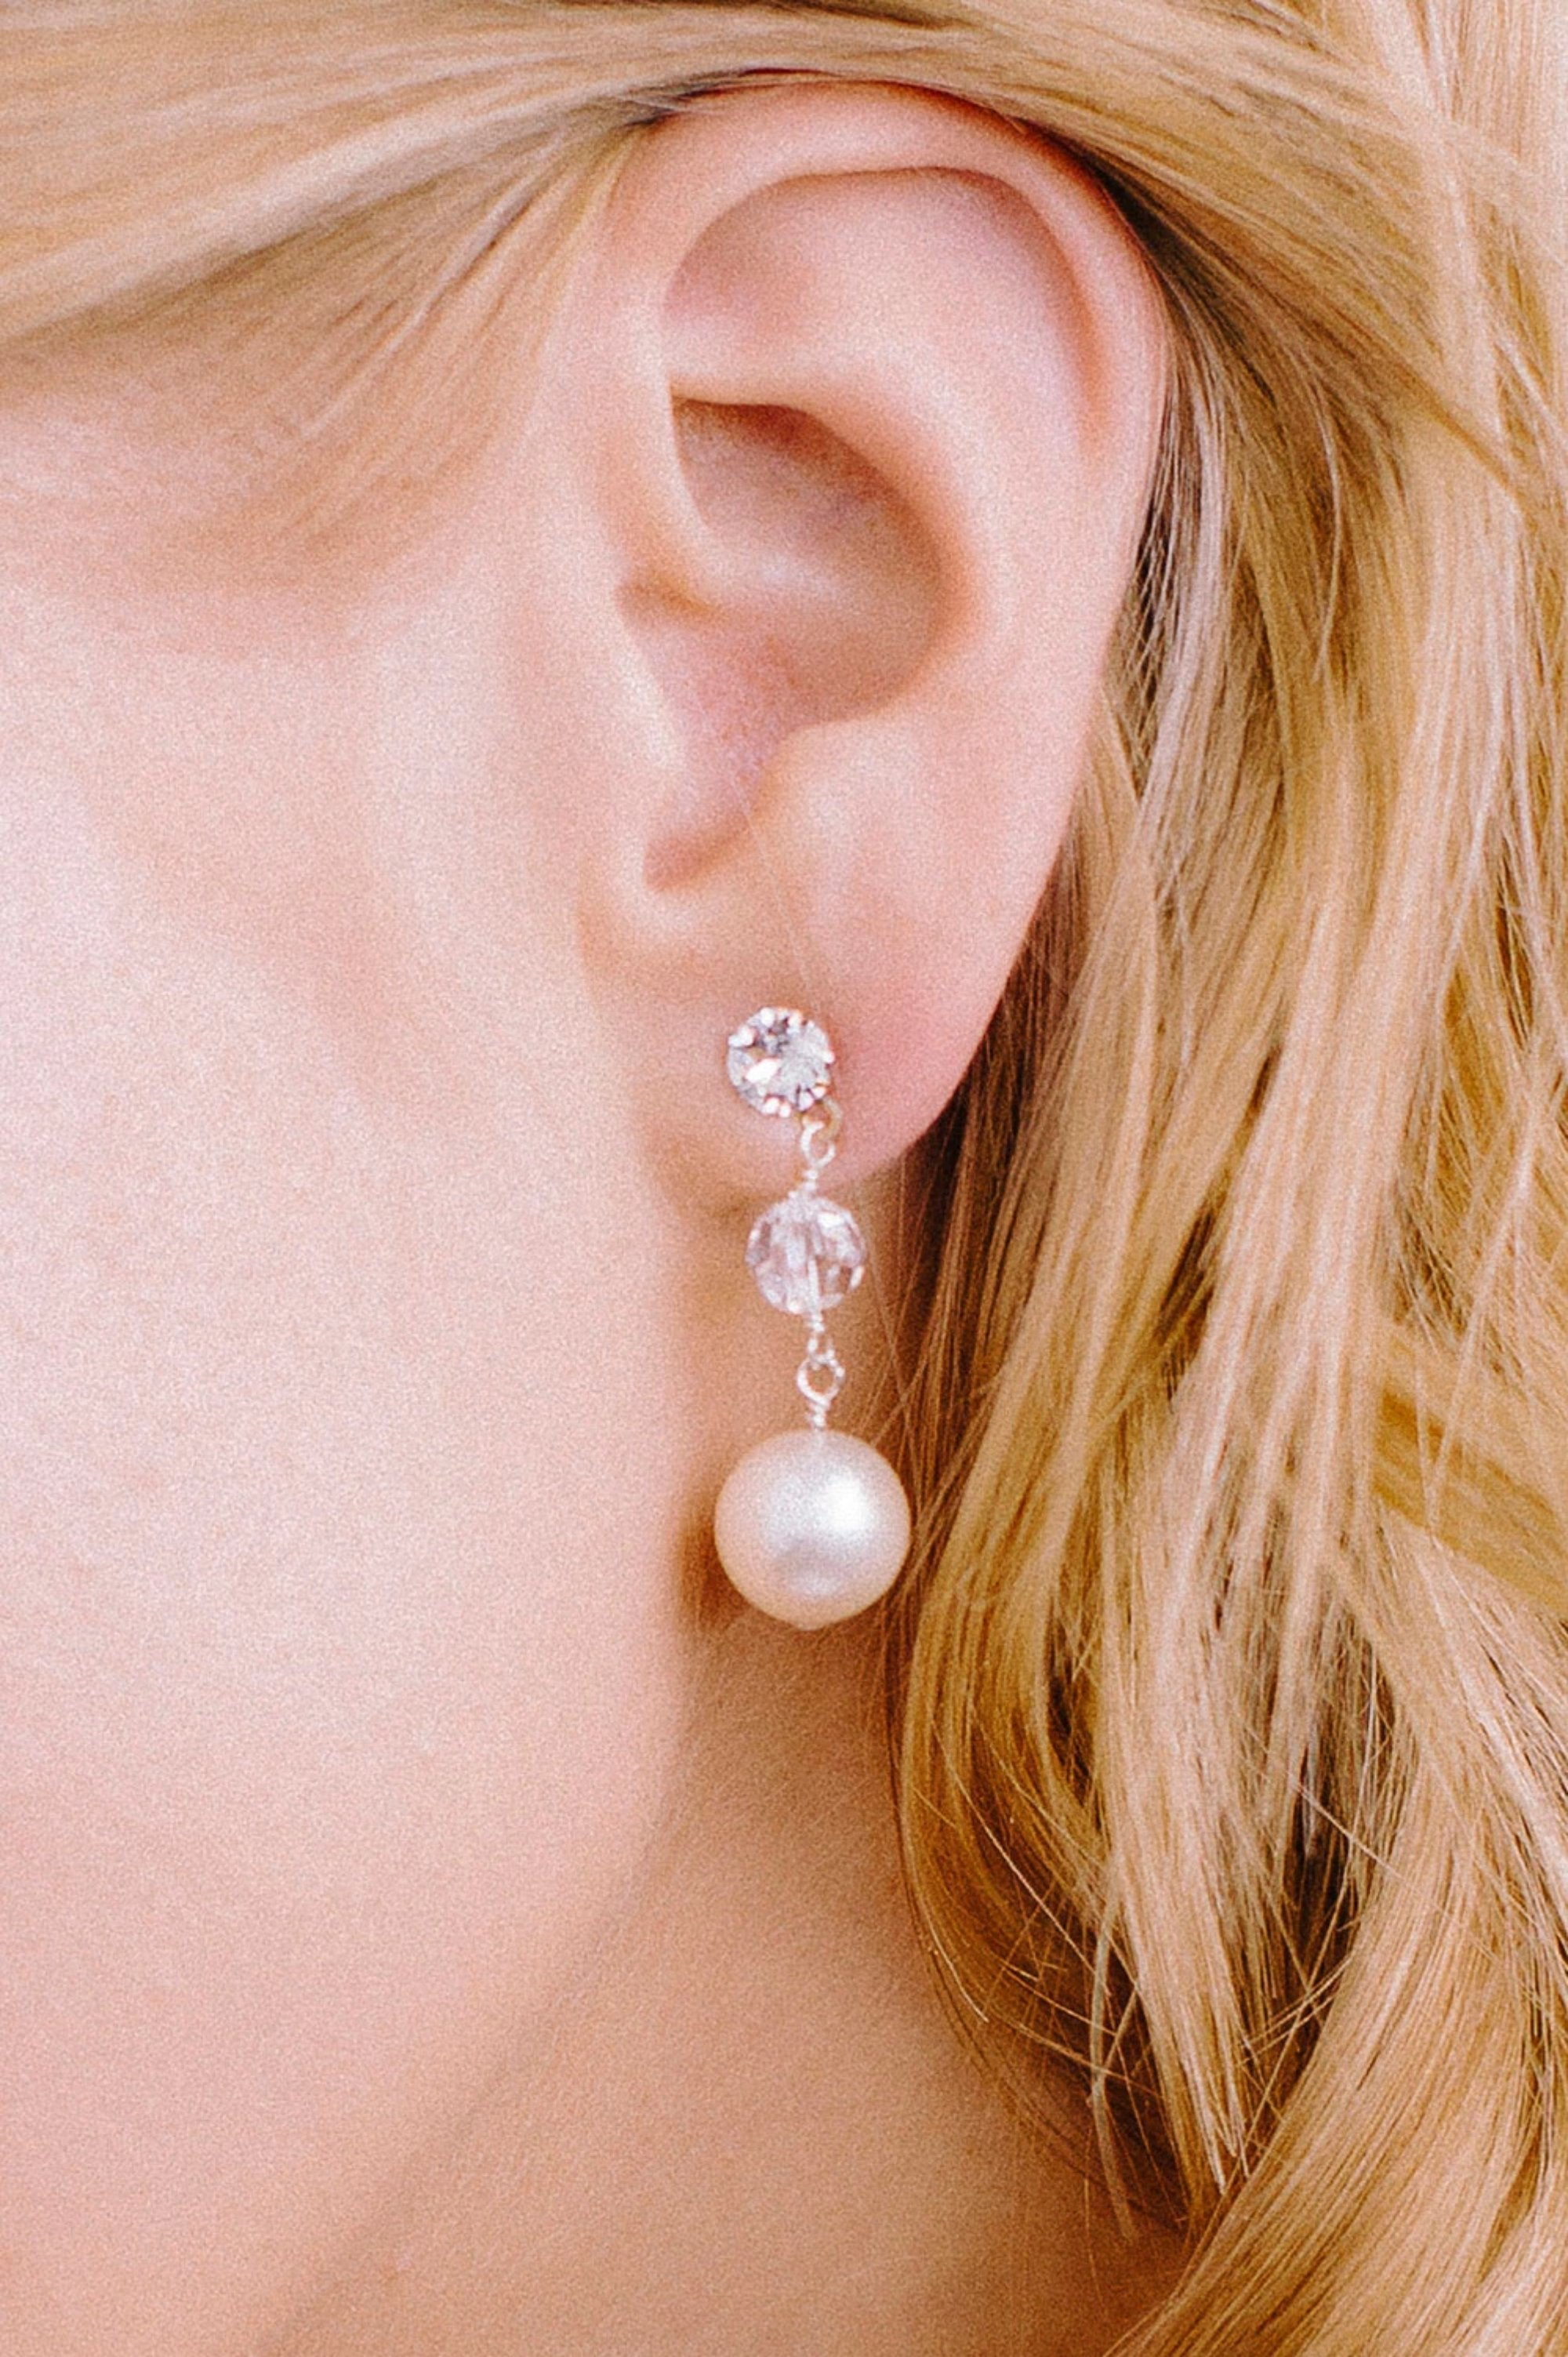 A left, double drop earring that consists of a perfect pearl dropped from a clear crystal,  all dangling from a small, sparking crystal stud. Made by Sara Gabriel.